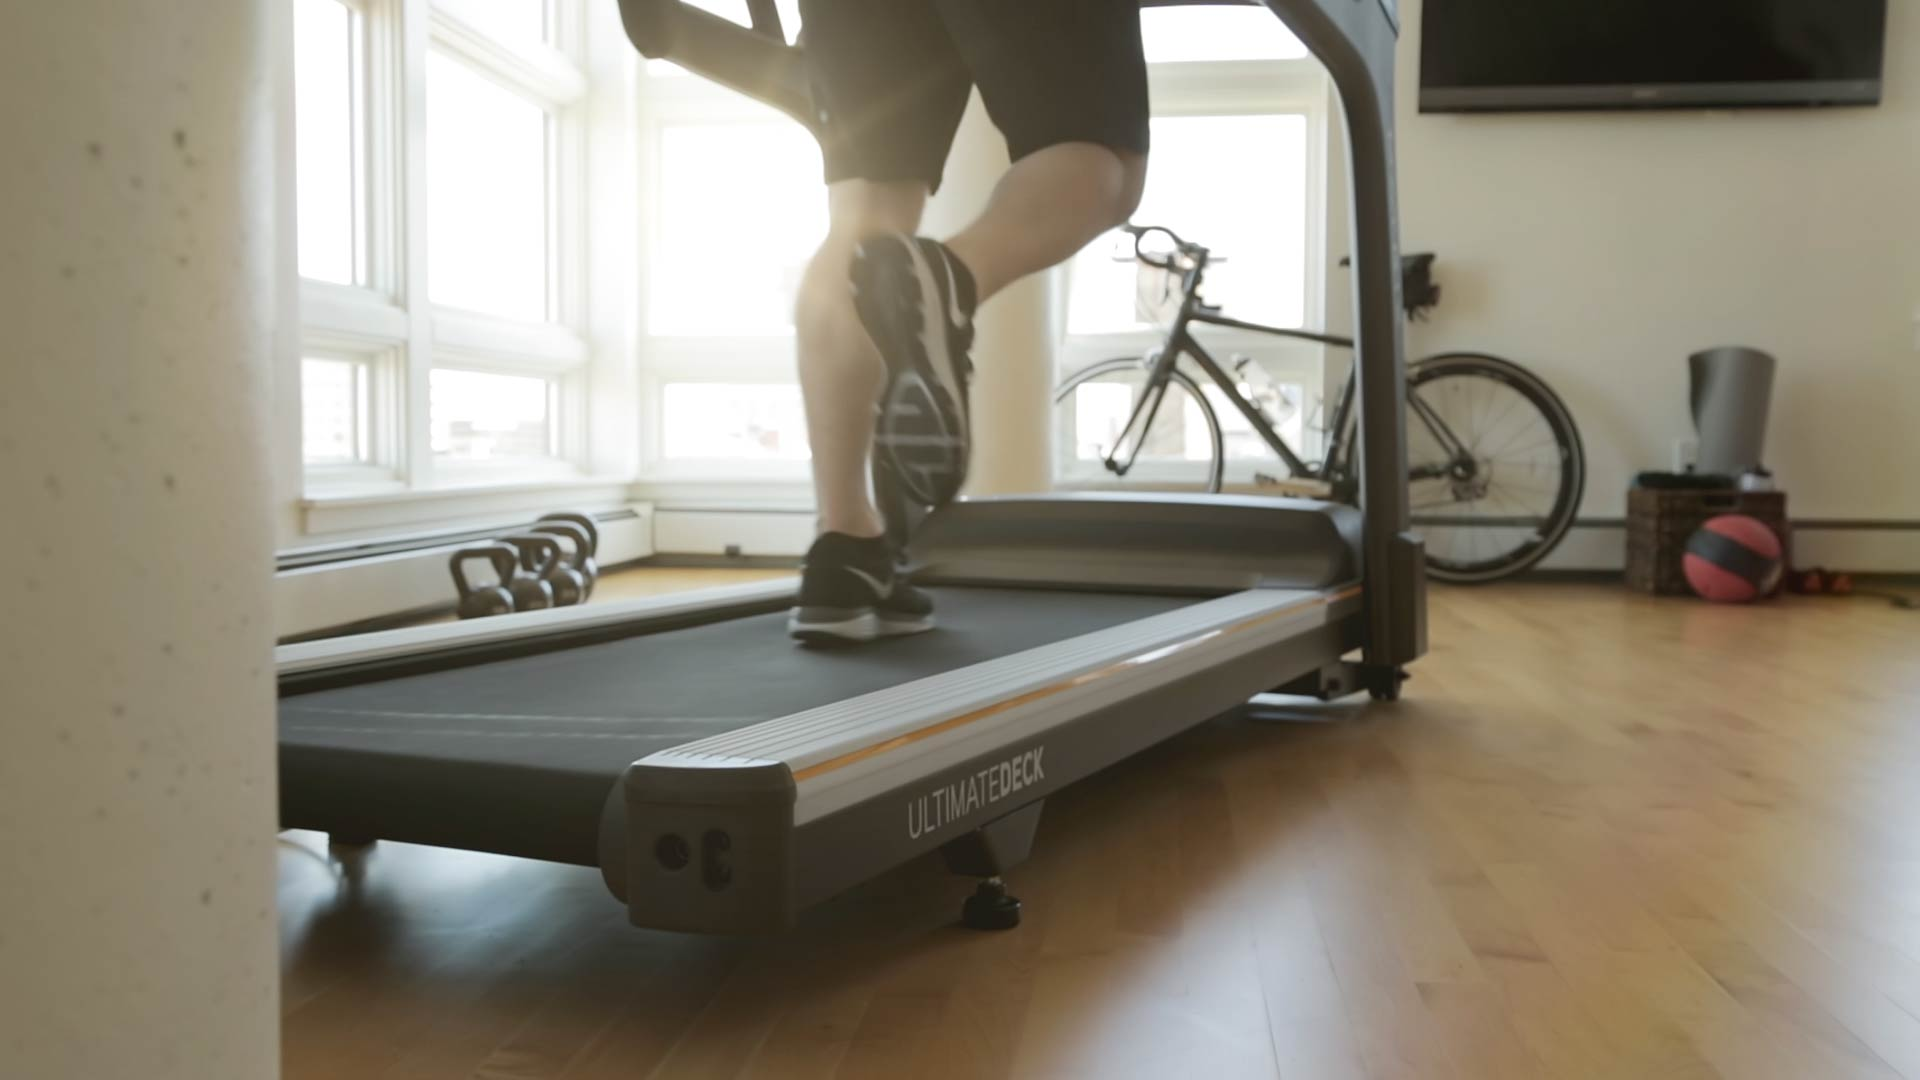 A cropped image of a man's legs running on a treadmill.